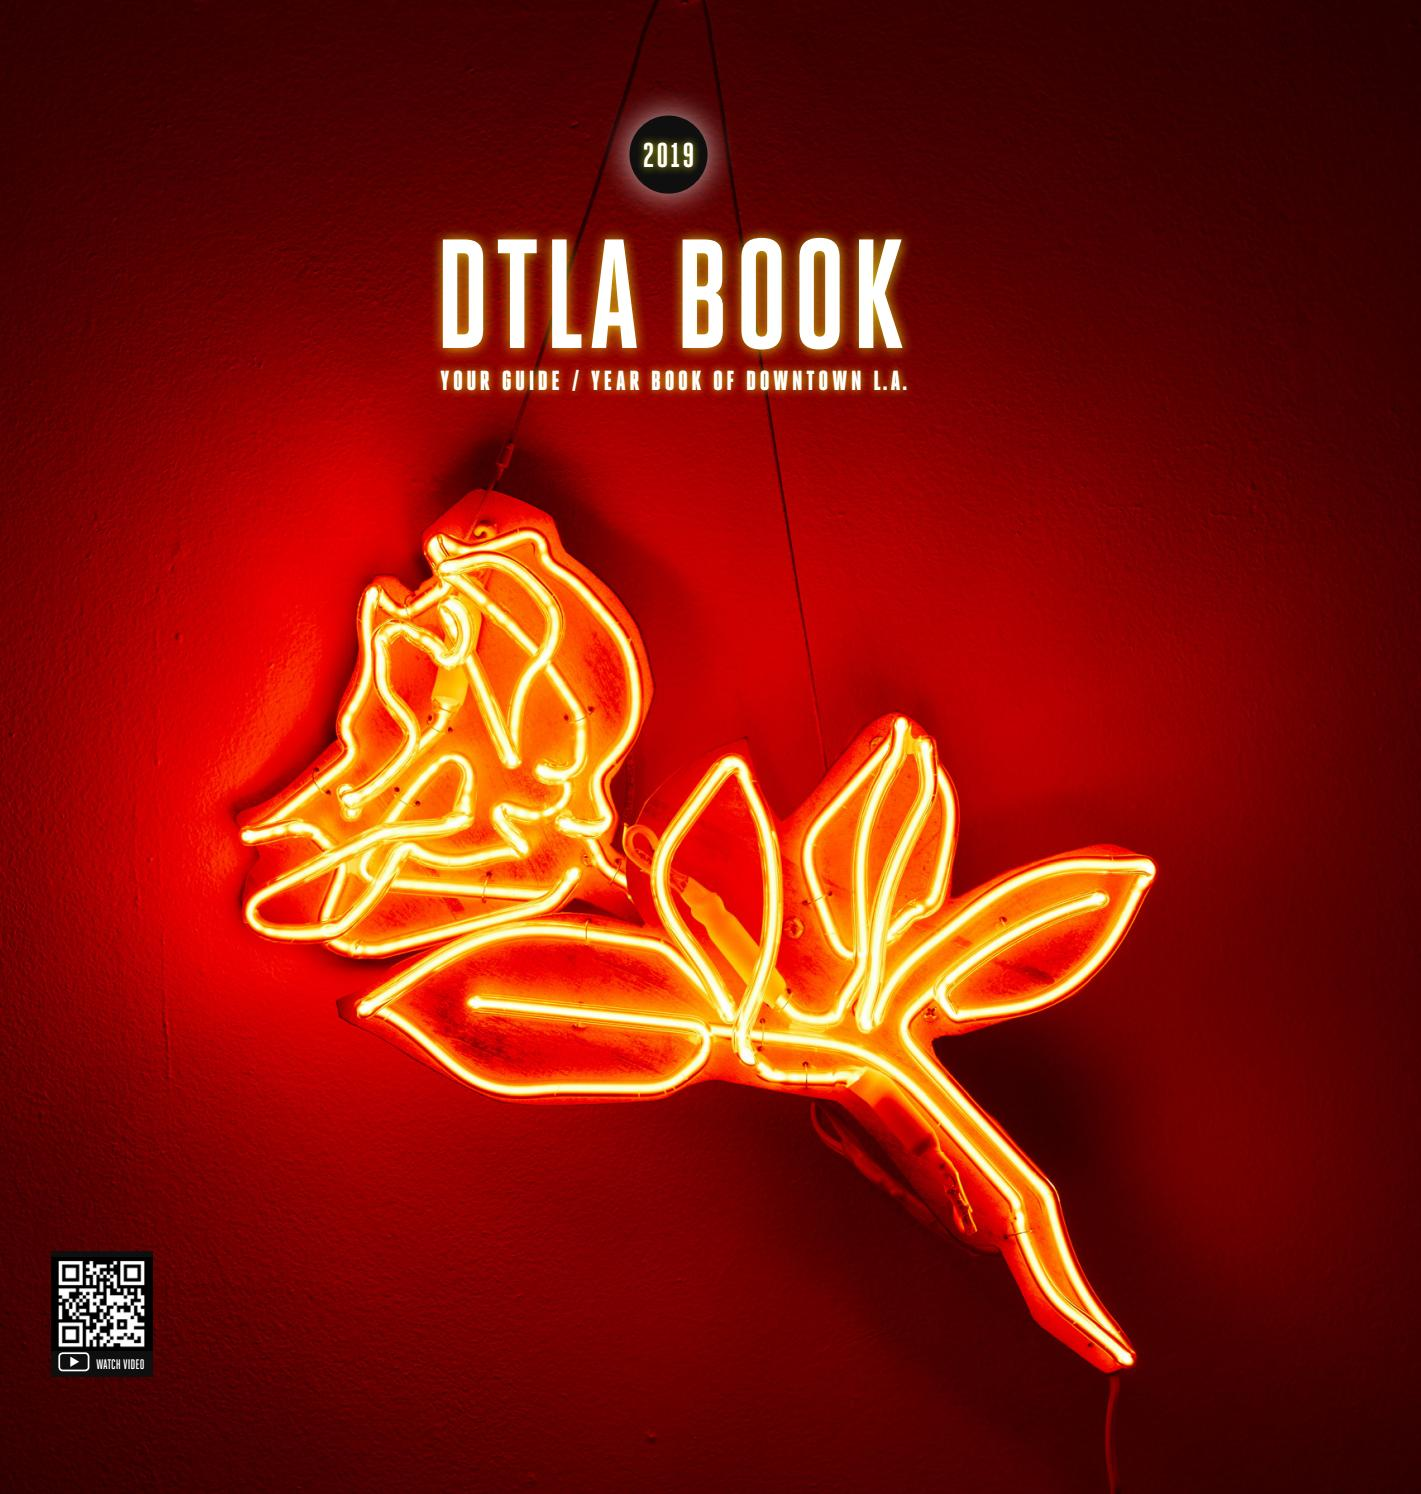 DTLA Book 2019 (Digital Version) by District 8 Media - issuu 43c520afc2721